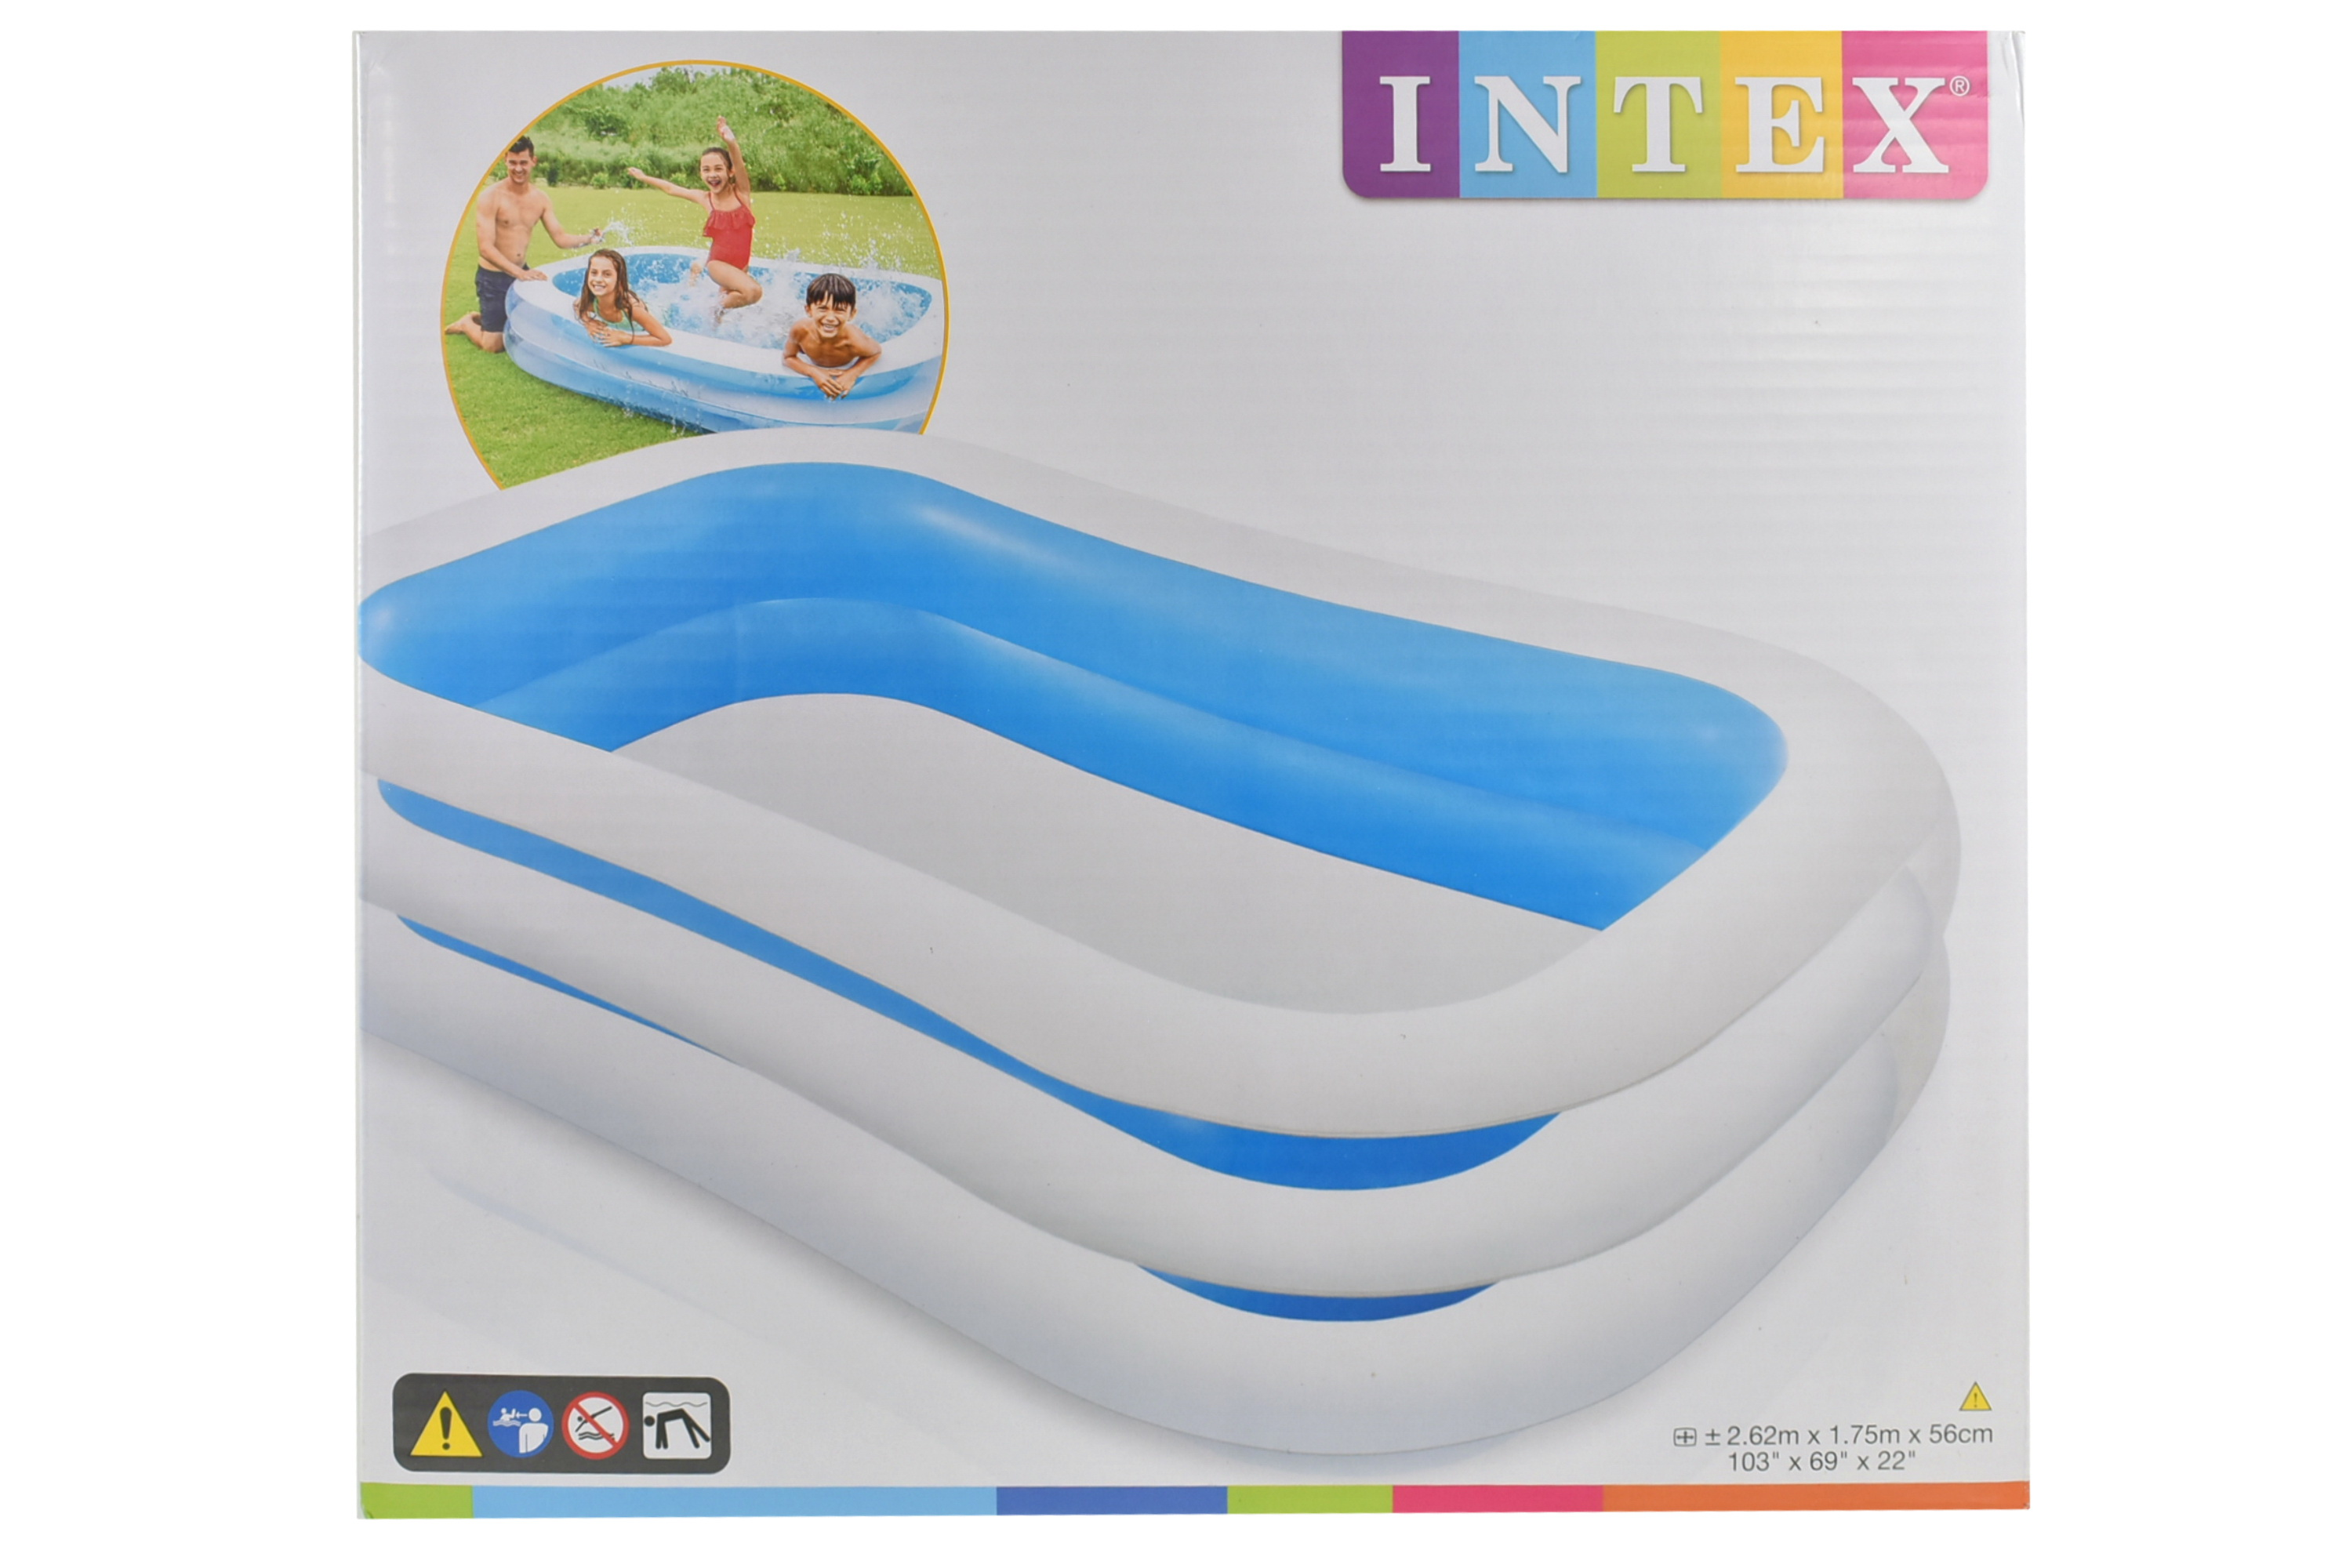 Family Inflatable Pool Swim Centre Paddling Pool Kids Summer Garden Fun 120 x 72